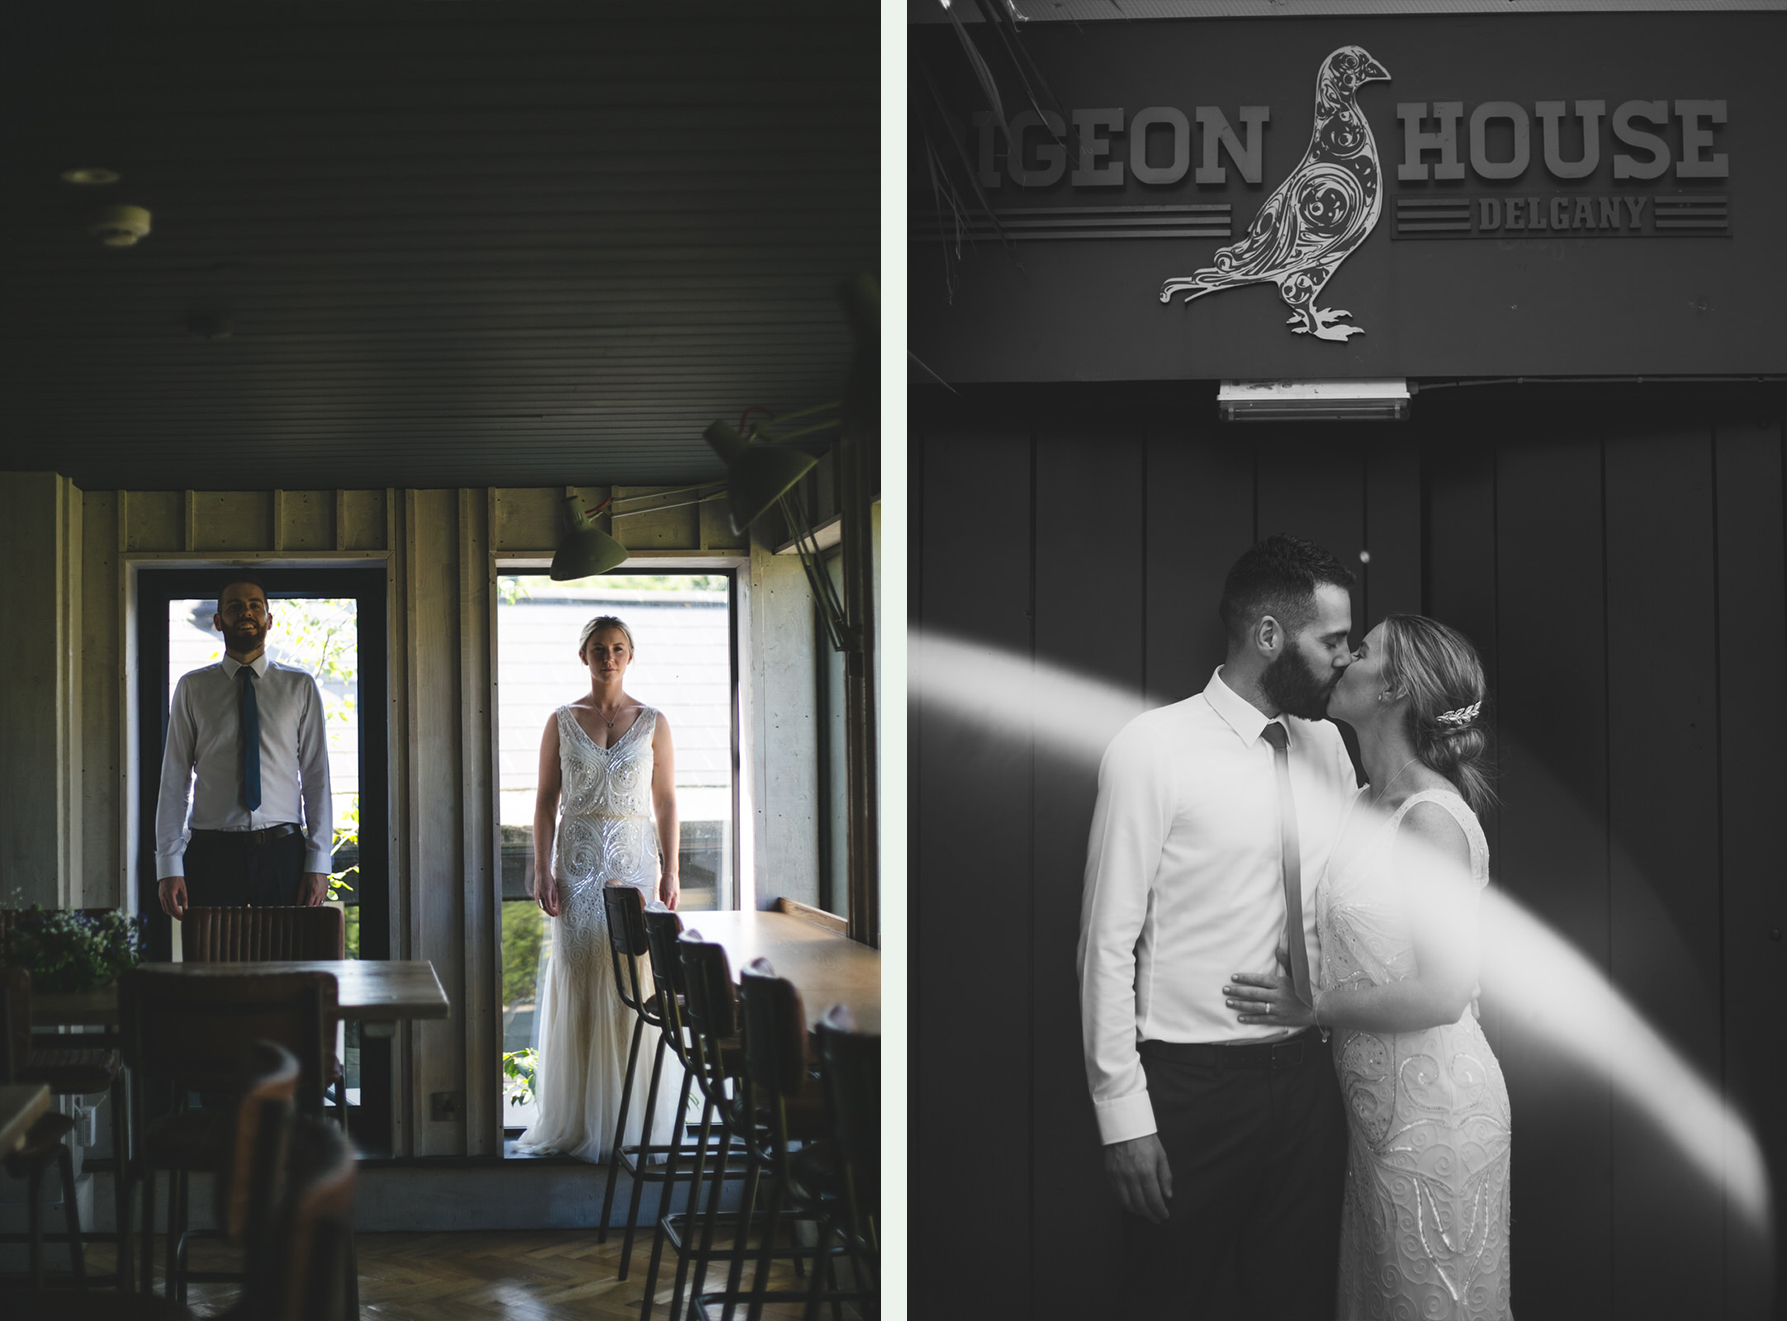 Wedding at the Pigeon House in Delgany